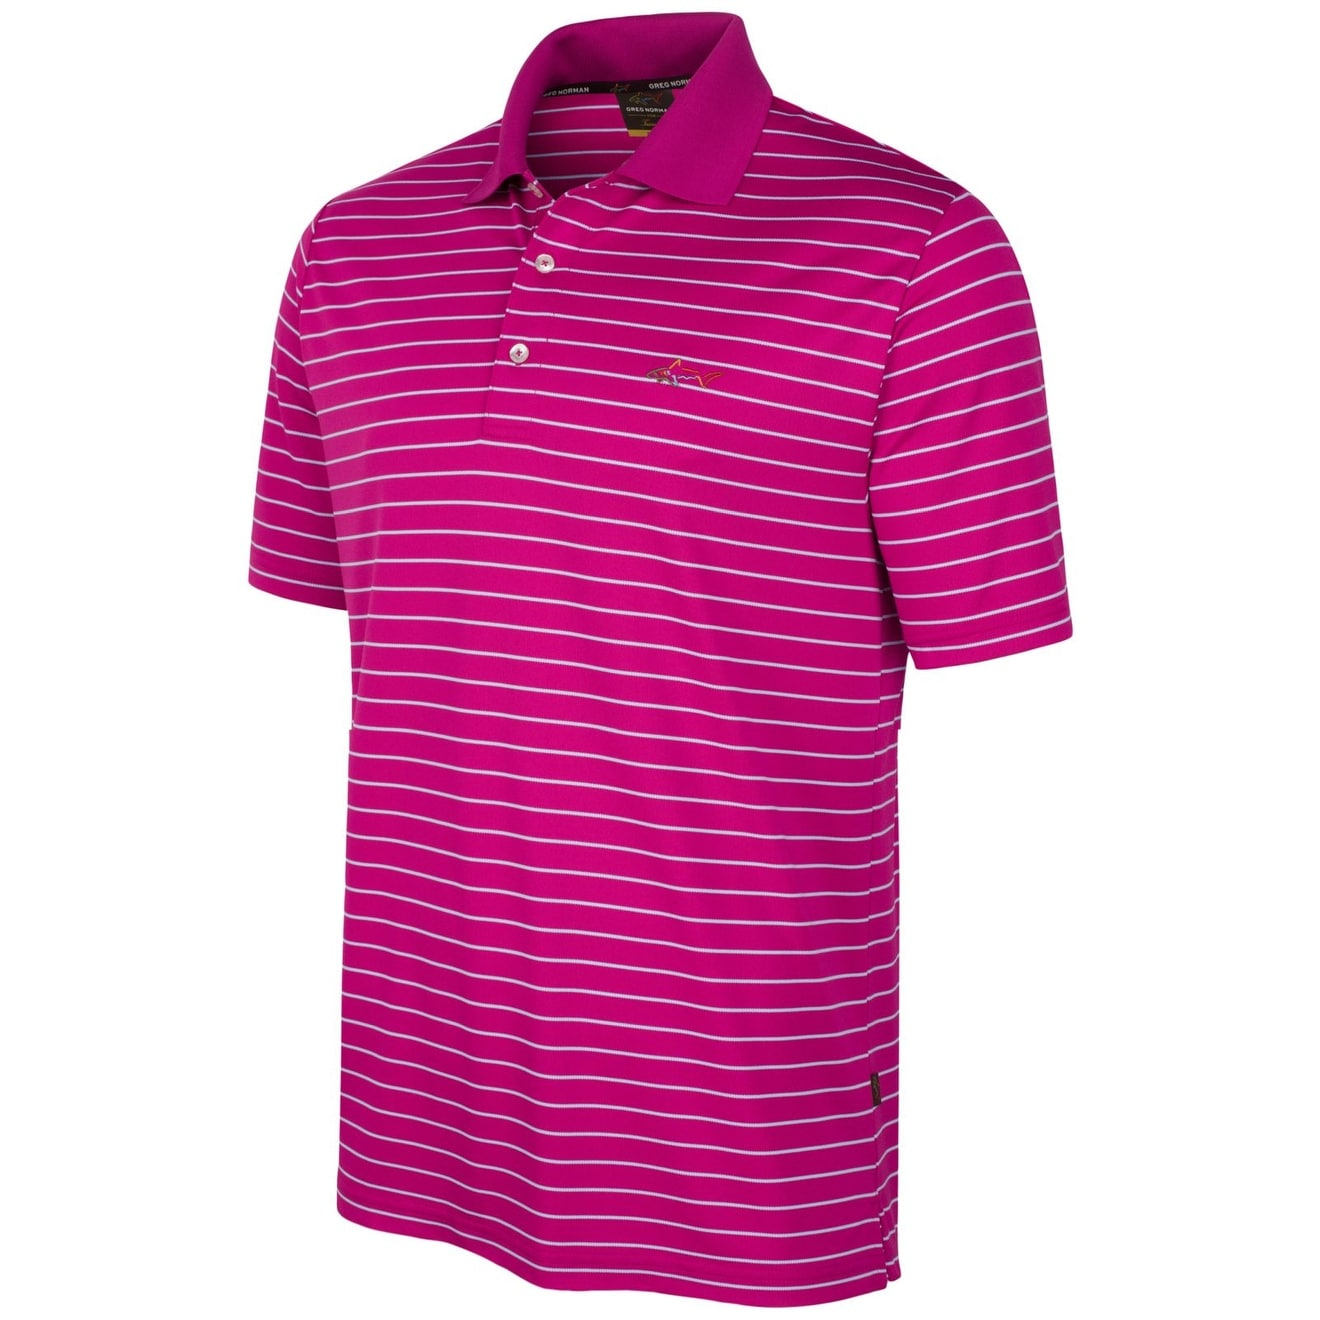 Shop Greg Norman New Pink White Mens Size Lt Polo Rugby Striped